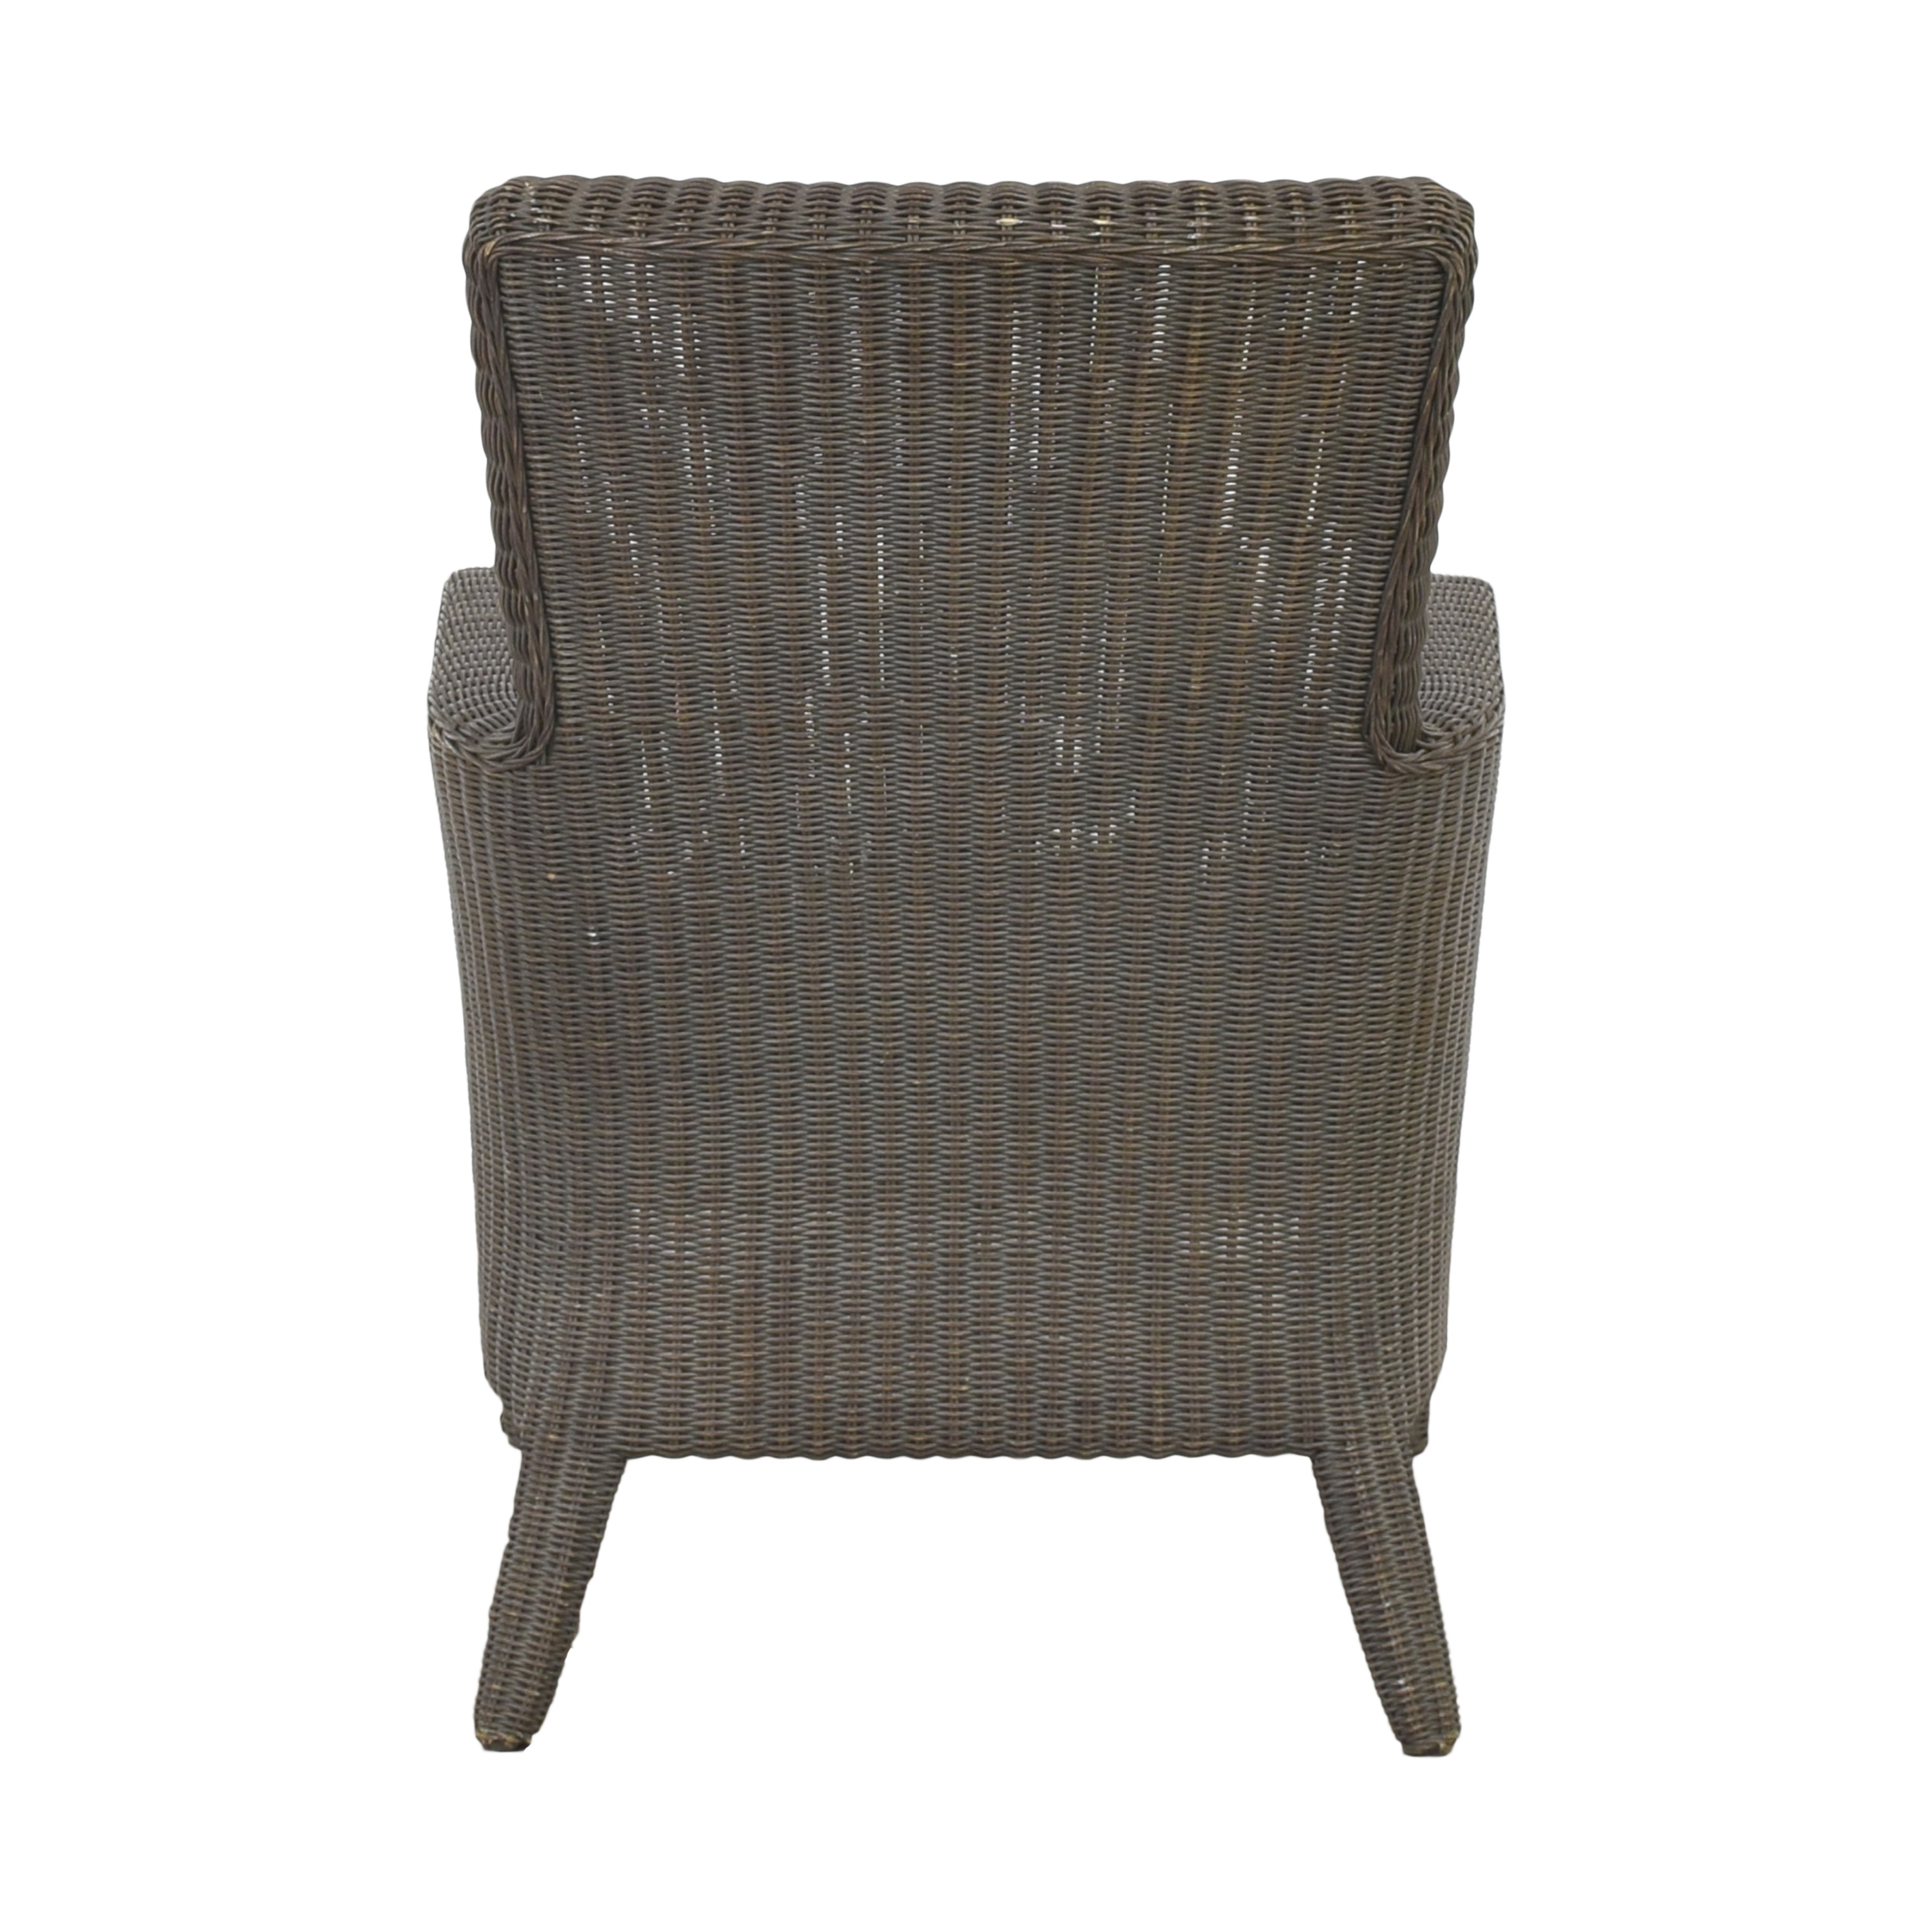 buy Crate & Barrel Wicker Arm Chair Crate & Barrel Accent Chairs